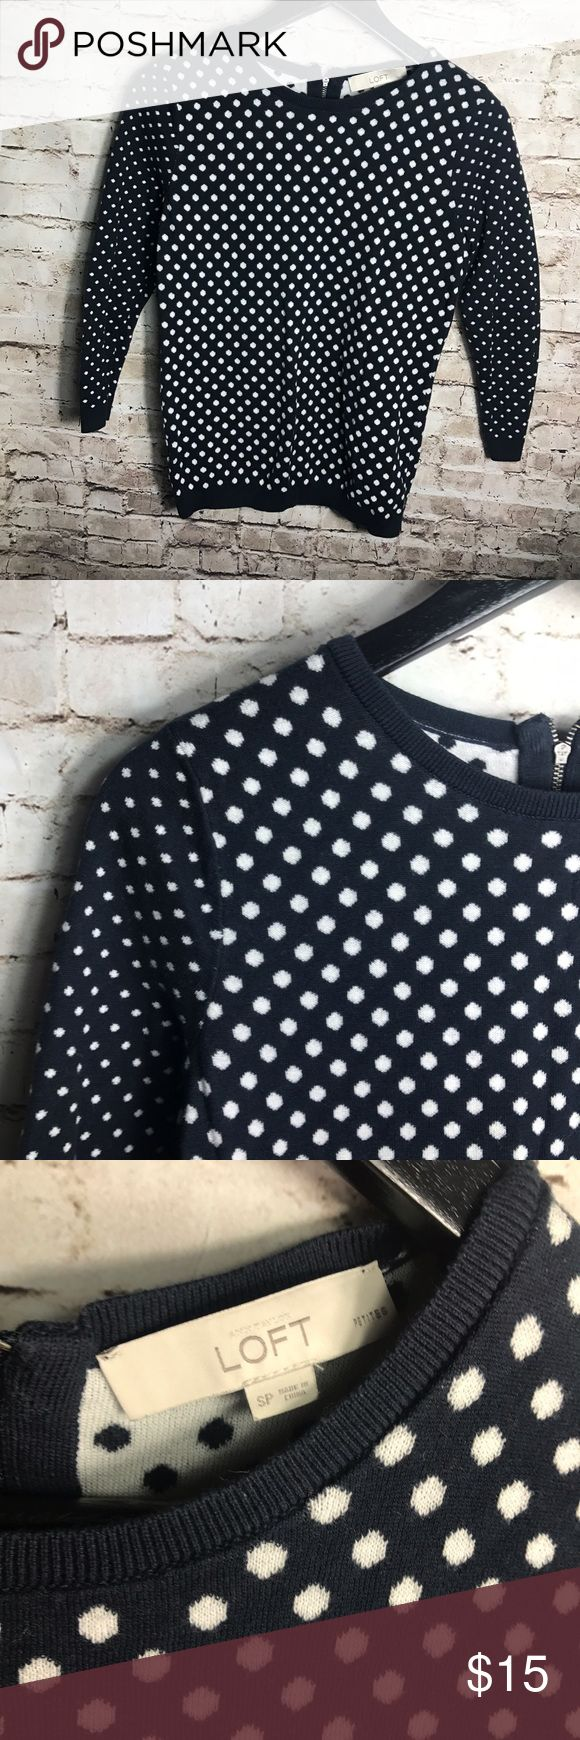 """✨ LOFT polka dot top ✨ Loft Womens size SP Blue and white Polka dot crew neck sweater   Pre-owned No rips, tears, marks or stains Please see pictures for details   Armpit to Armpit laying flat - 14"""" Length - 14.5""""  RN# 80734 LOFT Sweaters Crew & Scoop Necks"""